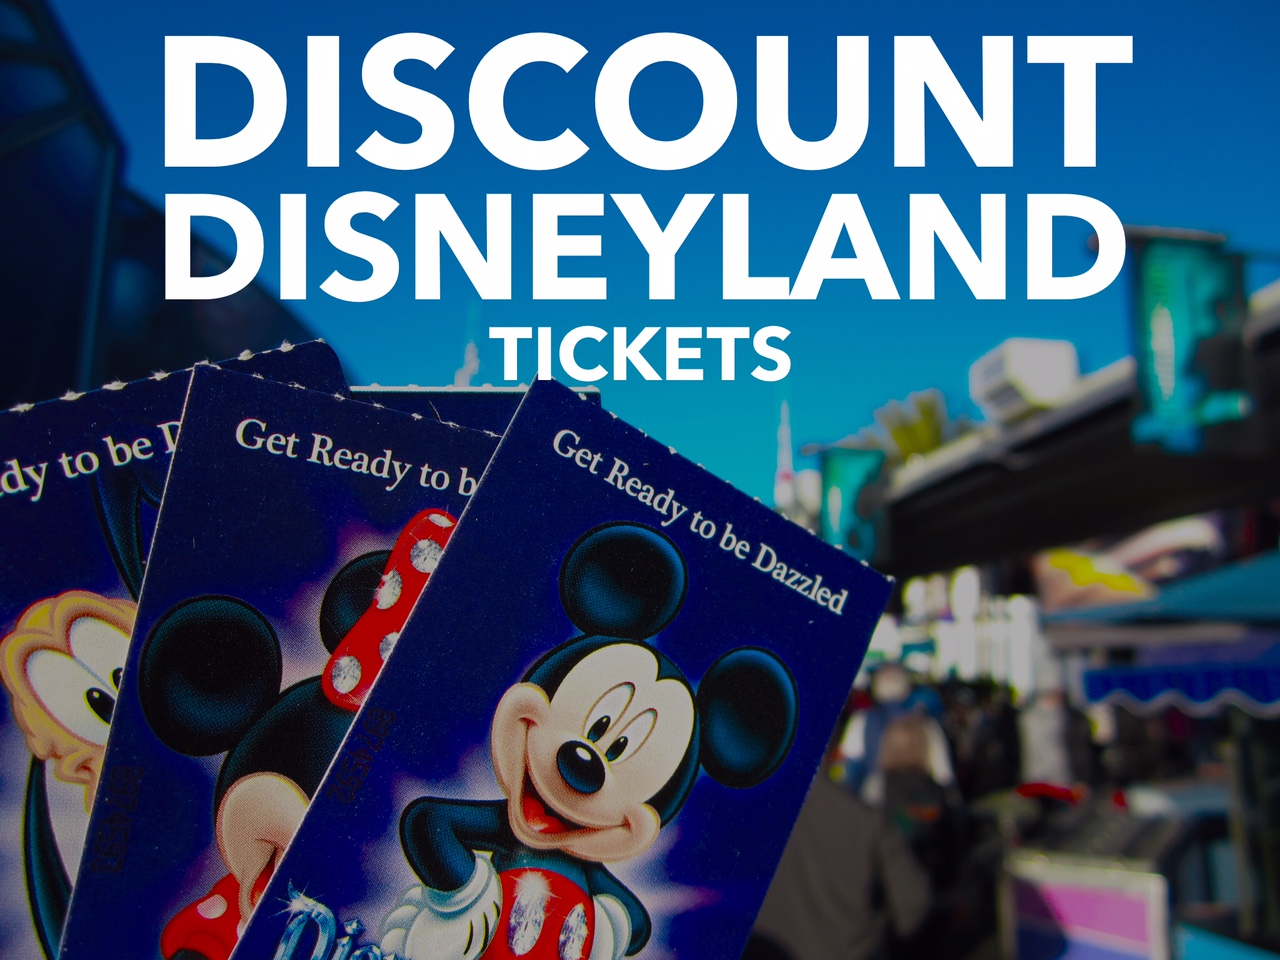 Disney world coupon code